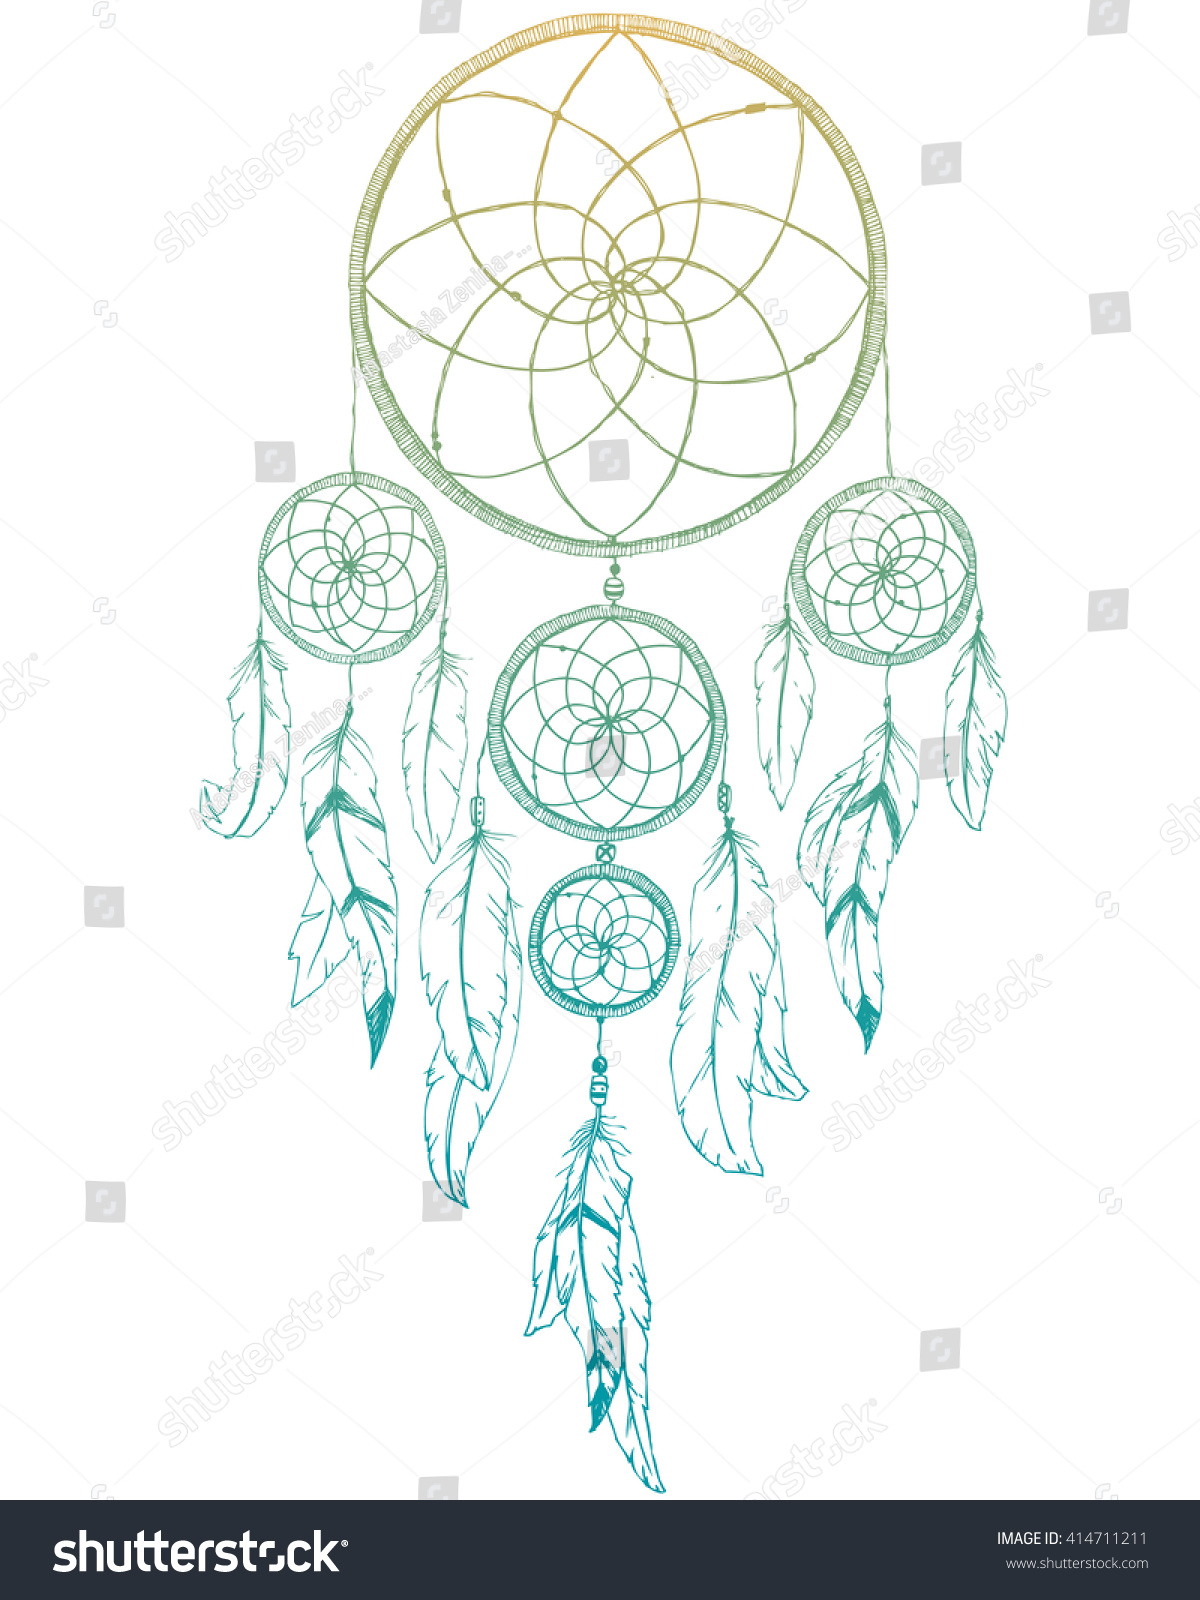 Graphic design dream catcher feathers boho stock vector for Dream catcher graphic